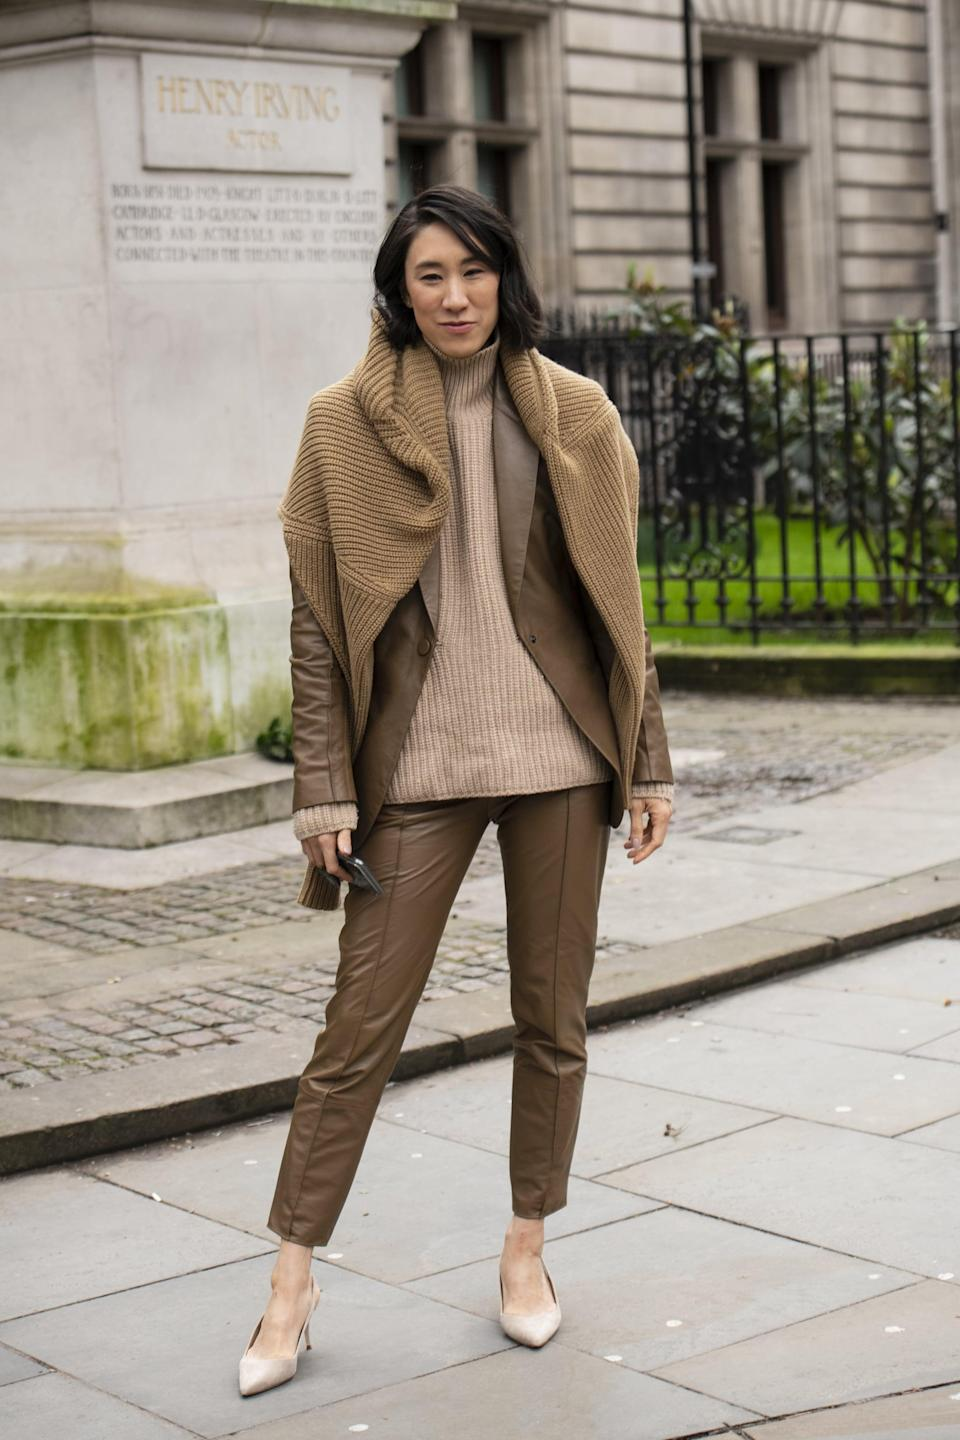 <p>We love the different shades of brown in this look, which create an eye-catching effect. If you're wondering how to amp up a monochrome look, Eva Chen has you covered-just throw on a scarf over your shoulders. </p>